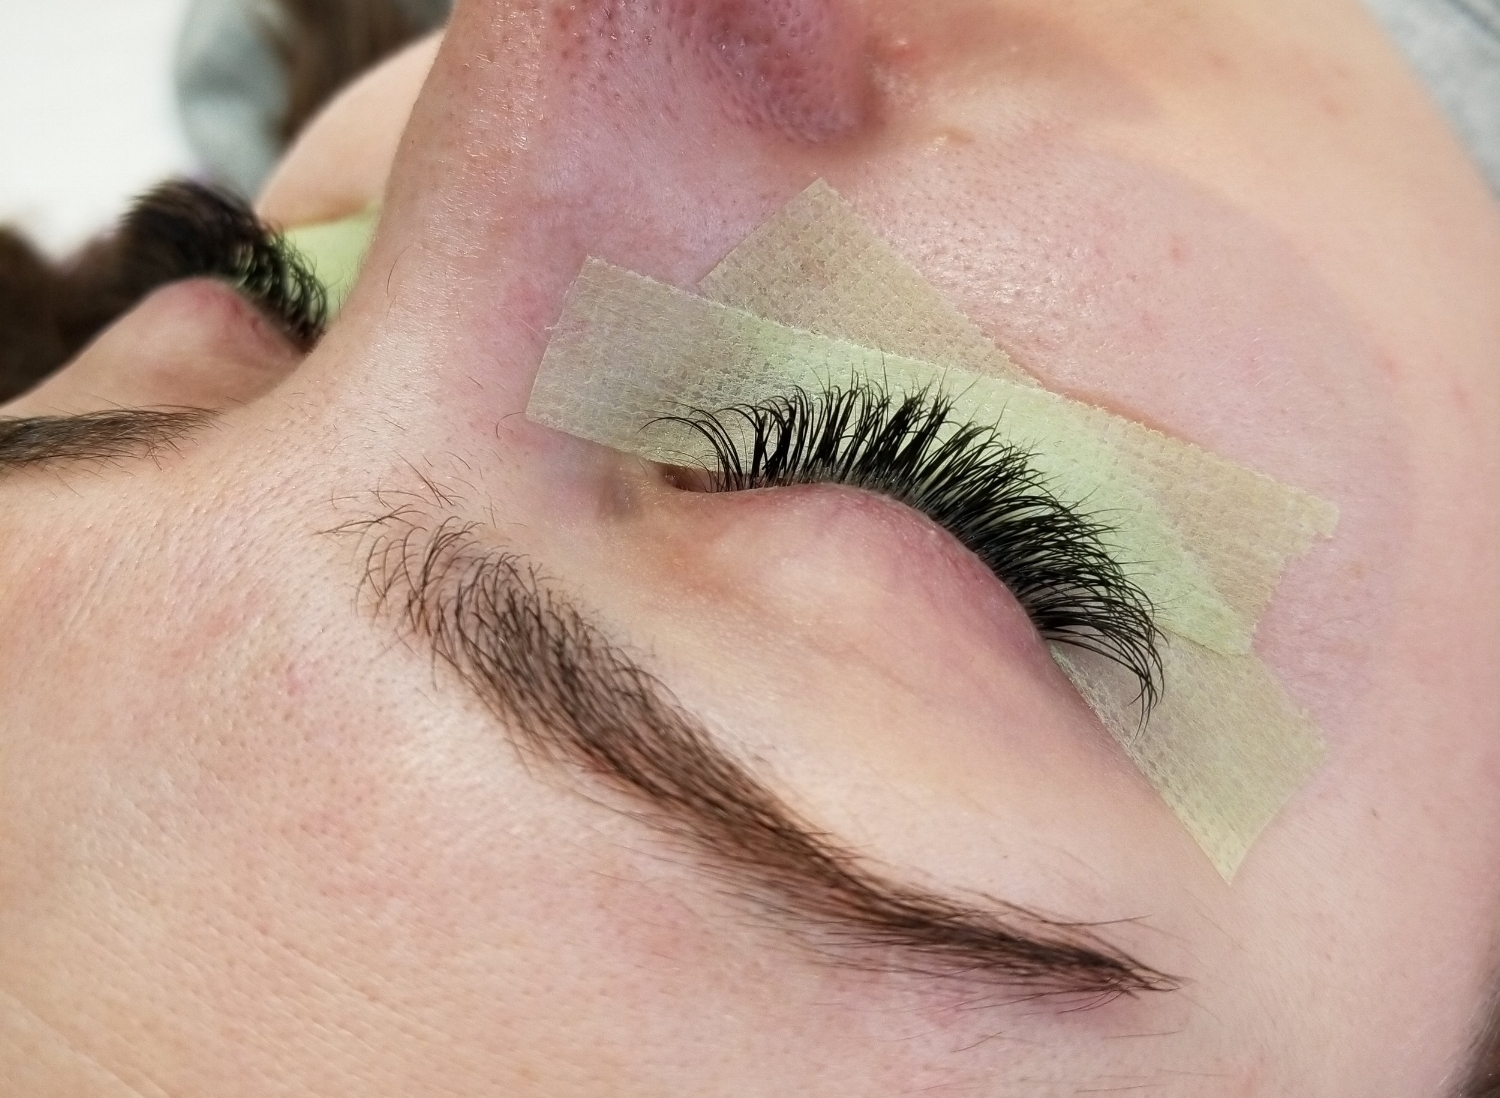 After Eyelash Extensions - Full Classic Set PROMO $100 with unlimited lashesRegularly $150